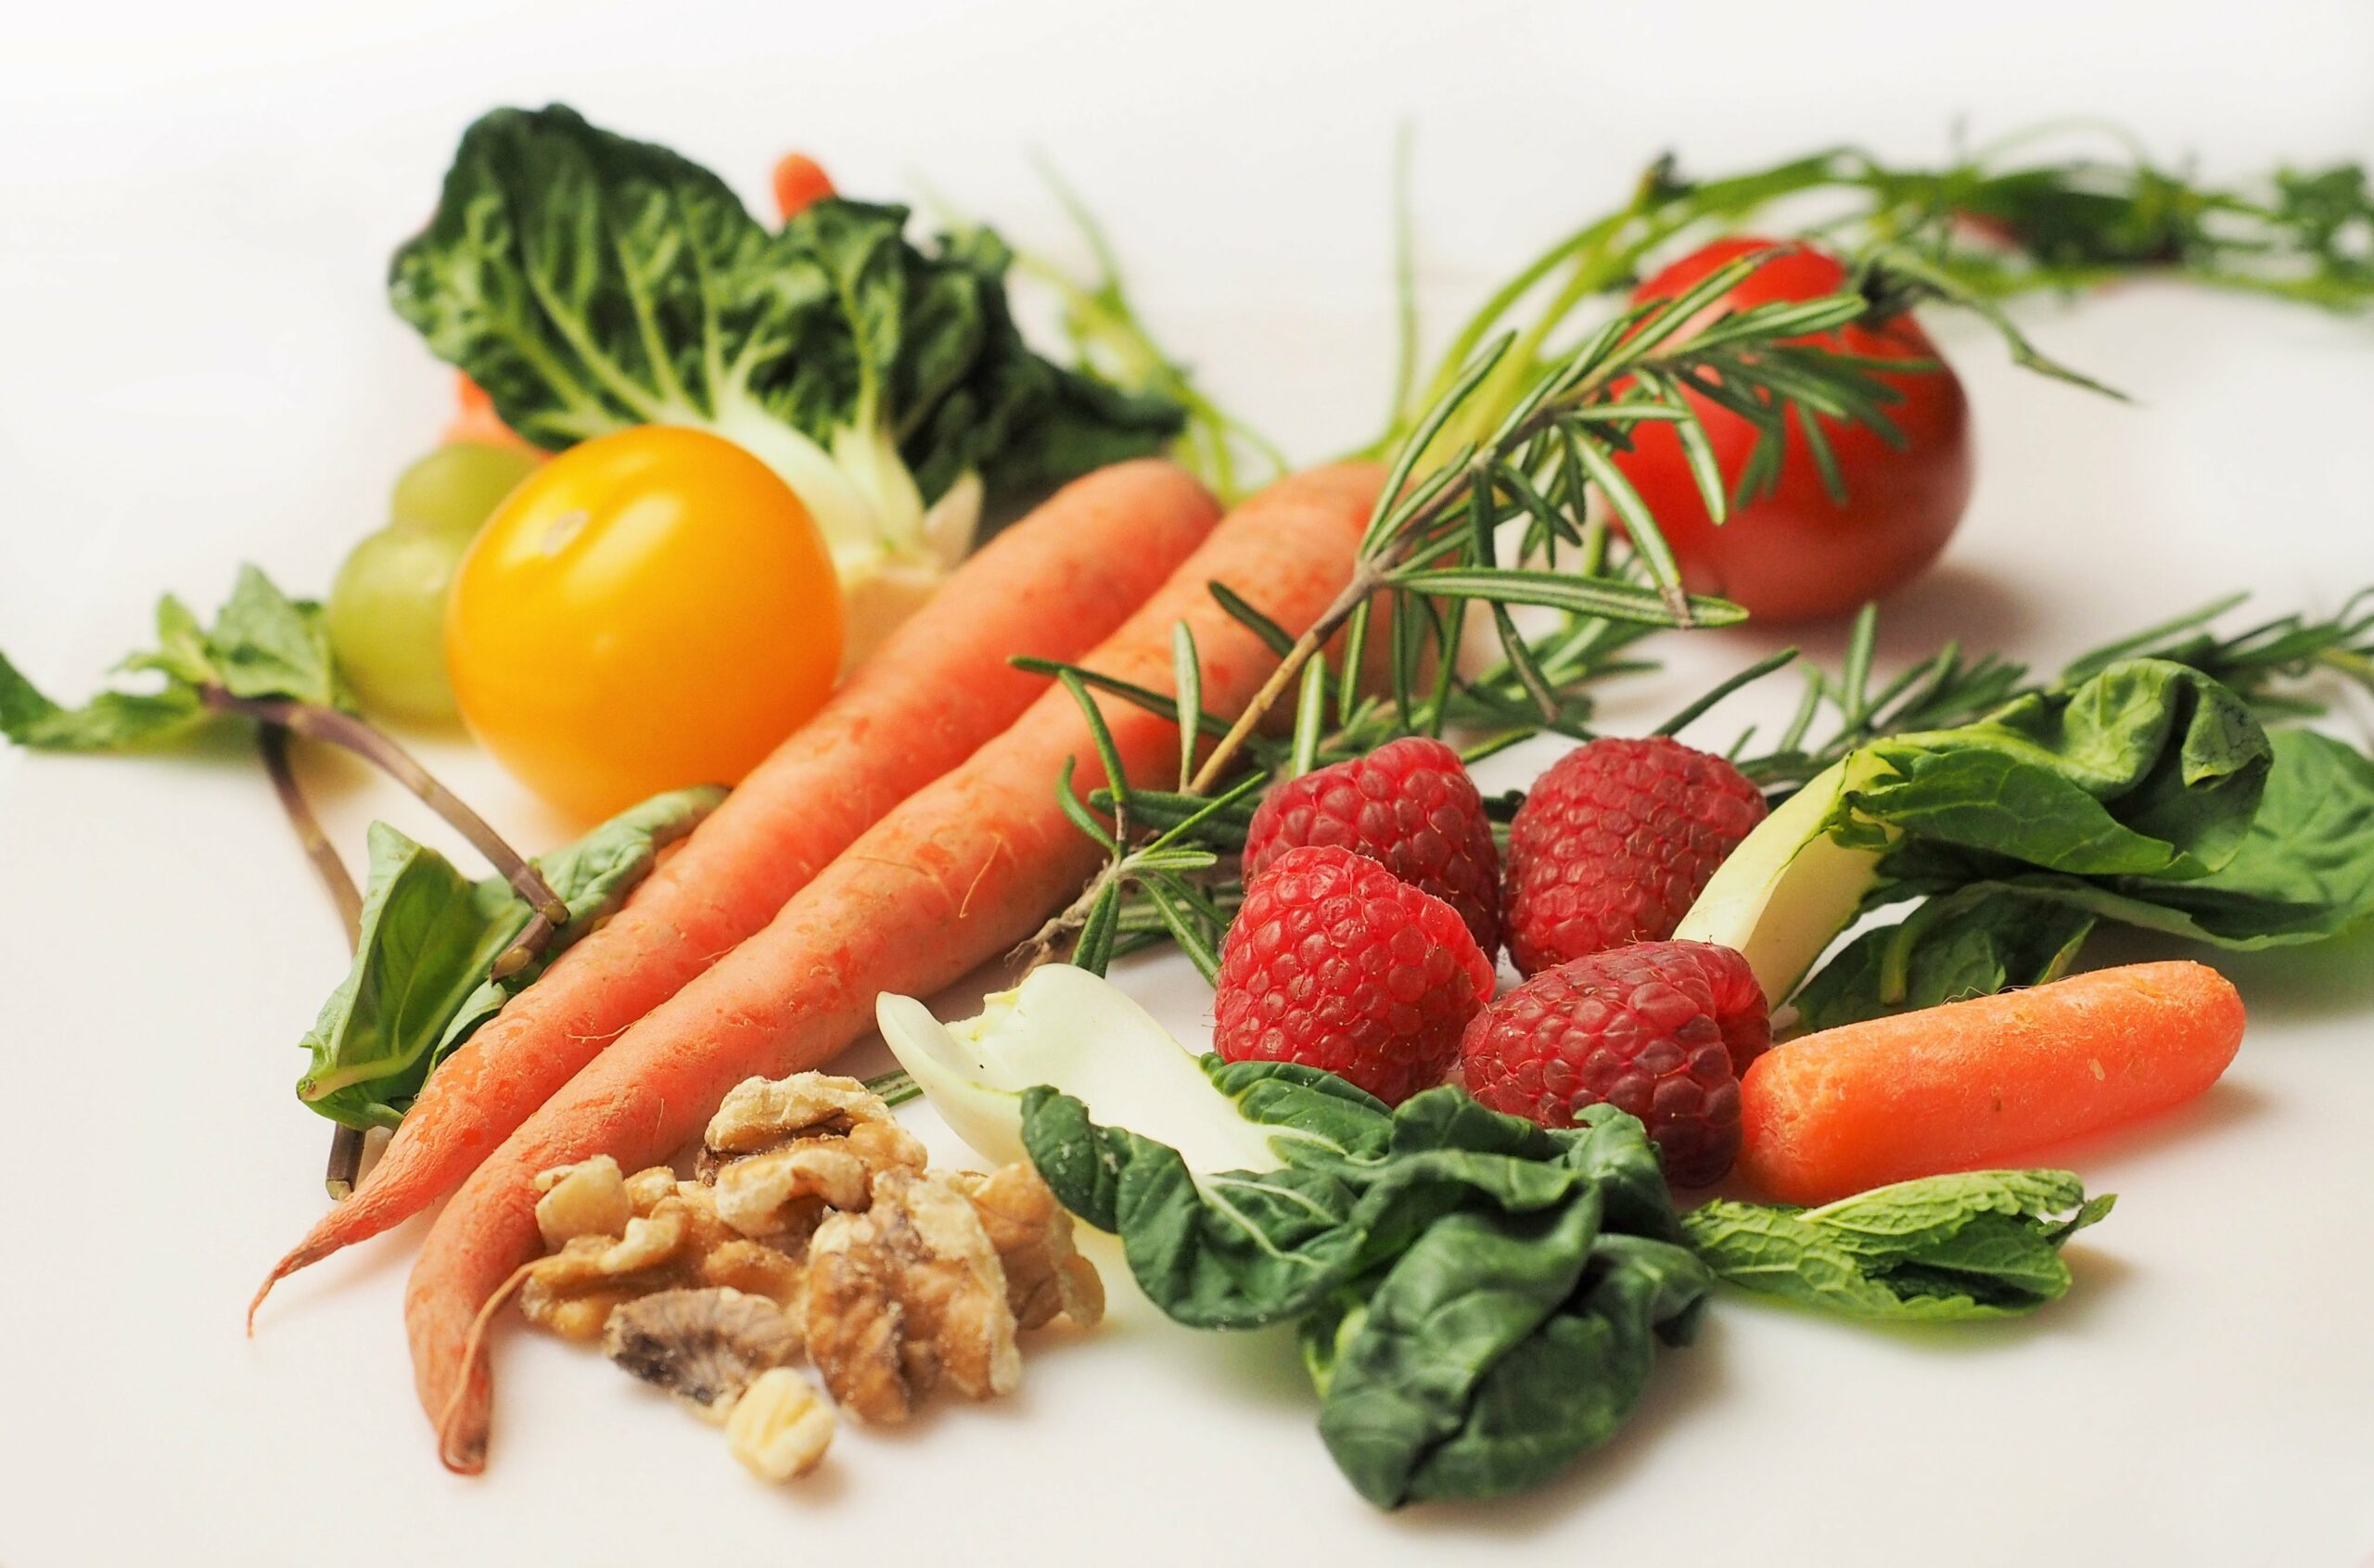 Some Quick Tips to Gain a Stronger Immune System